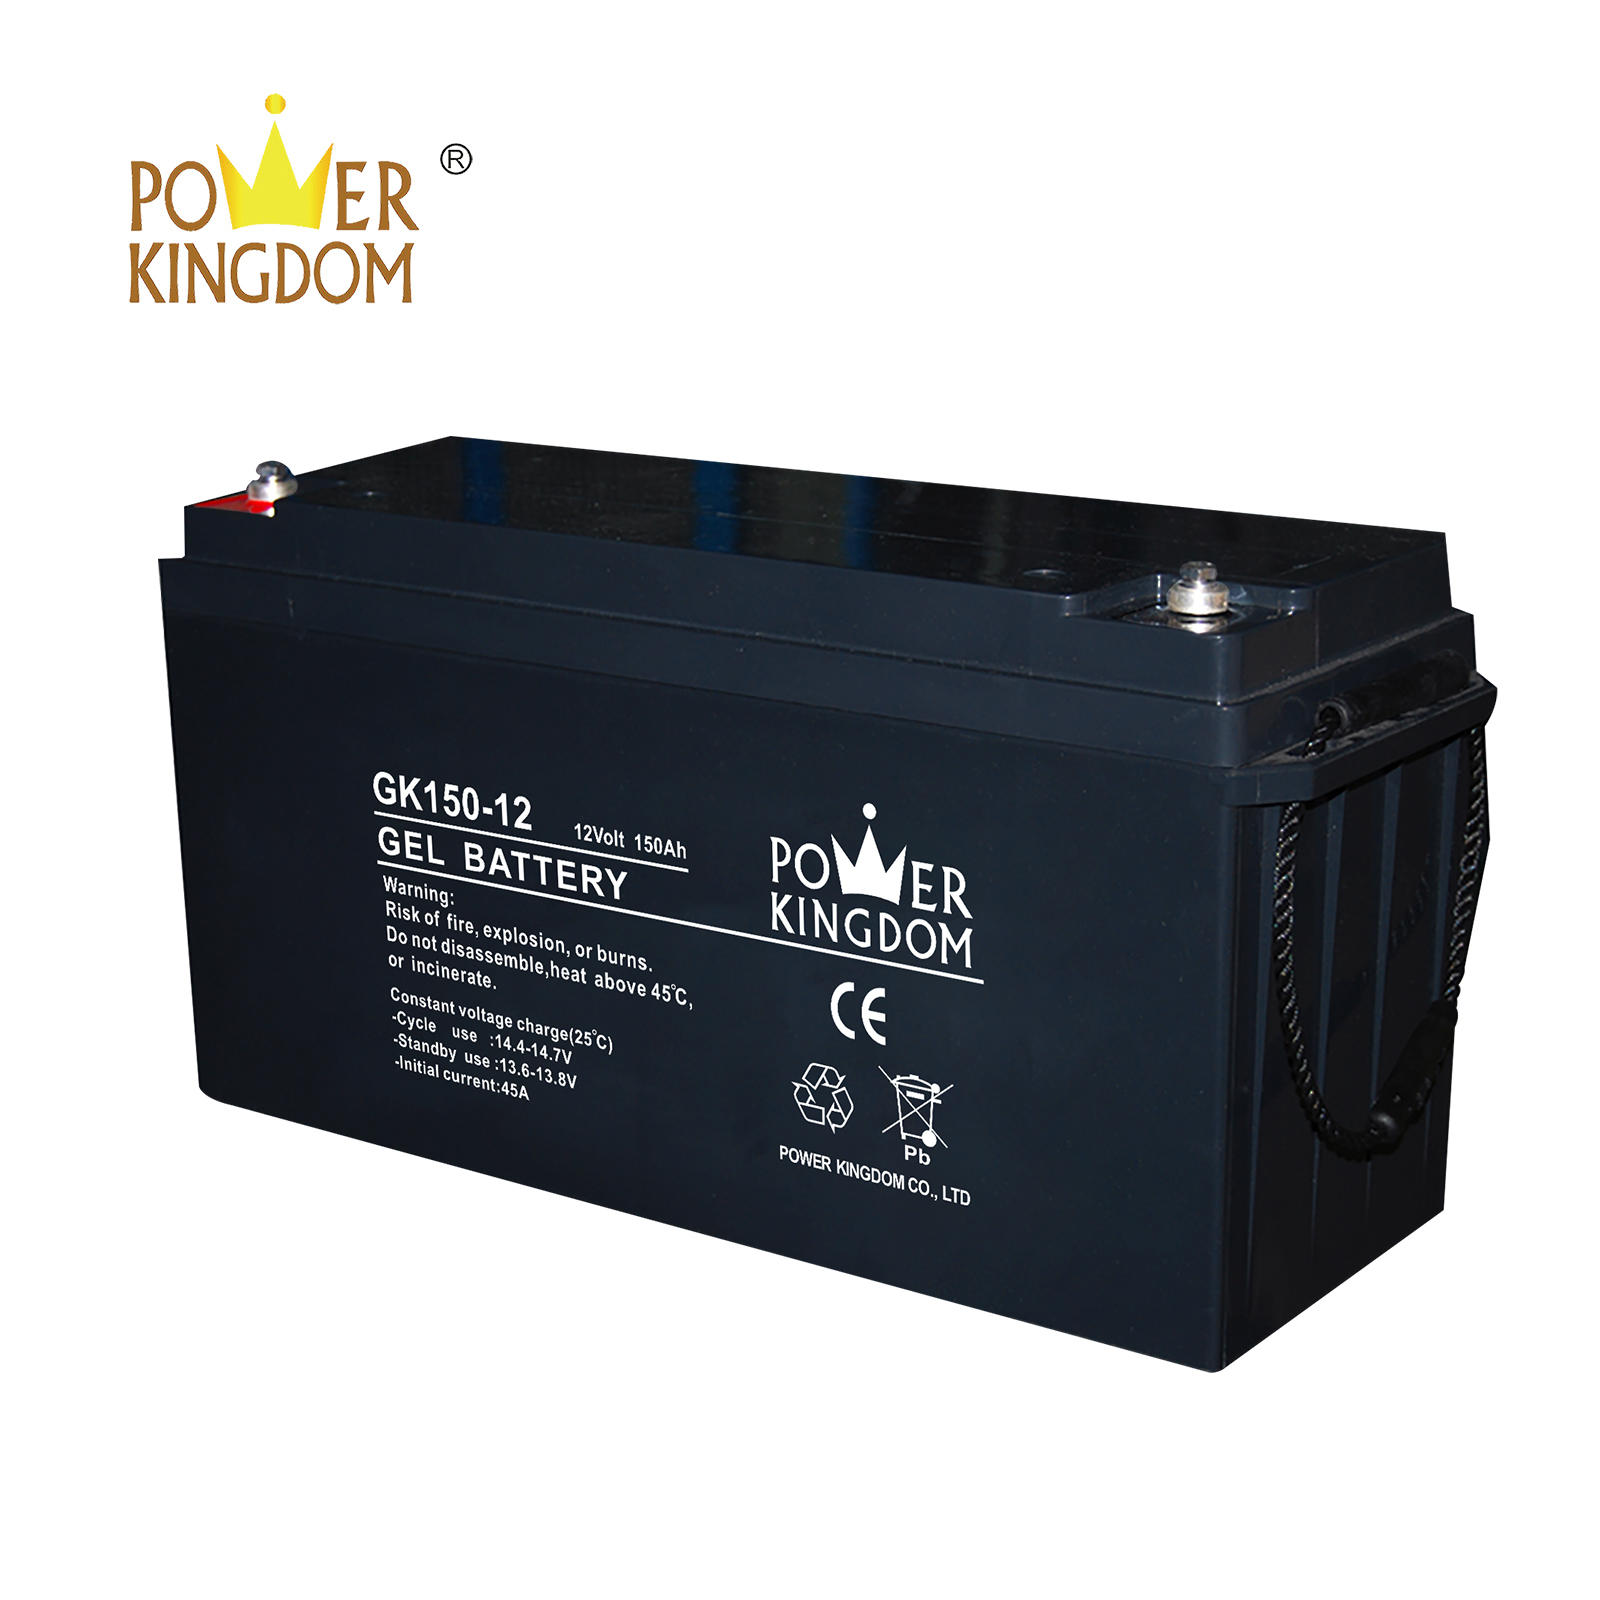 Power KIngdom popular 12v 150ah gel battery price